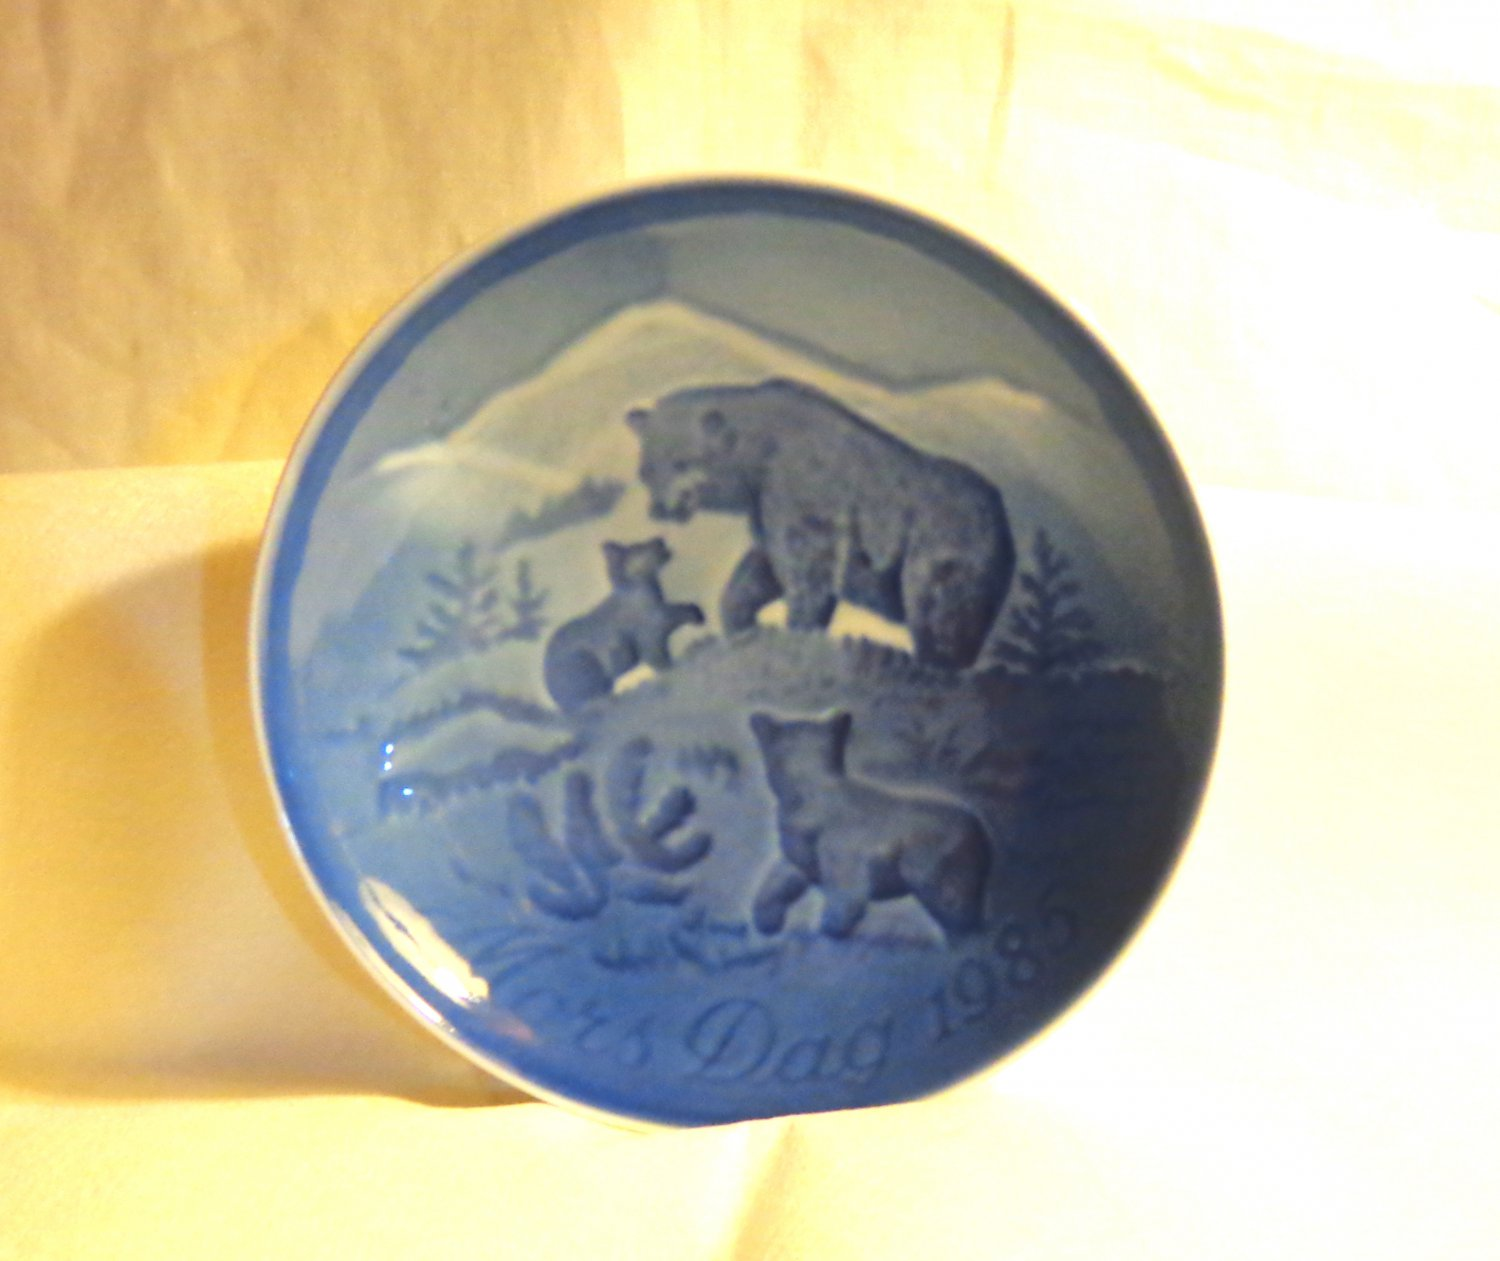 Bing and Grondahl 1985 Mother's Day plate Mors Dag bear and cubs blue BG porcelain hc3412